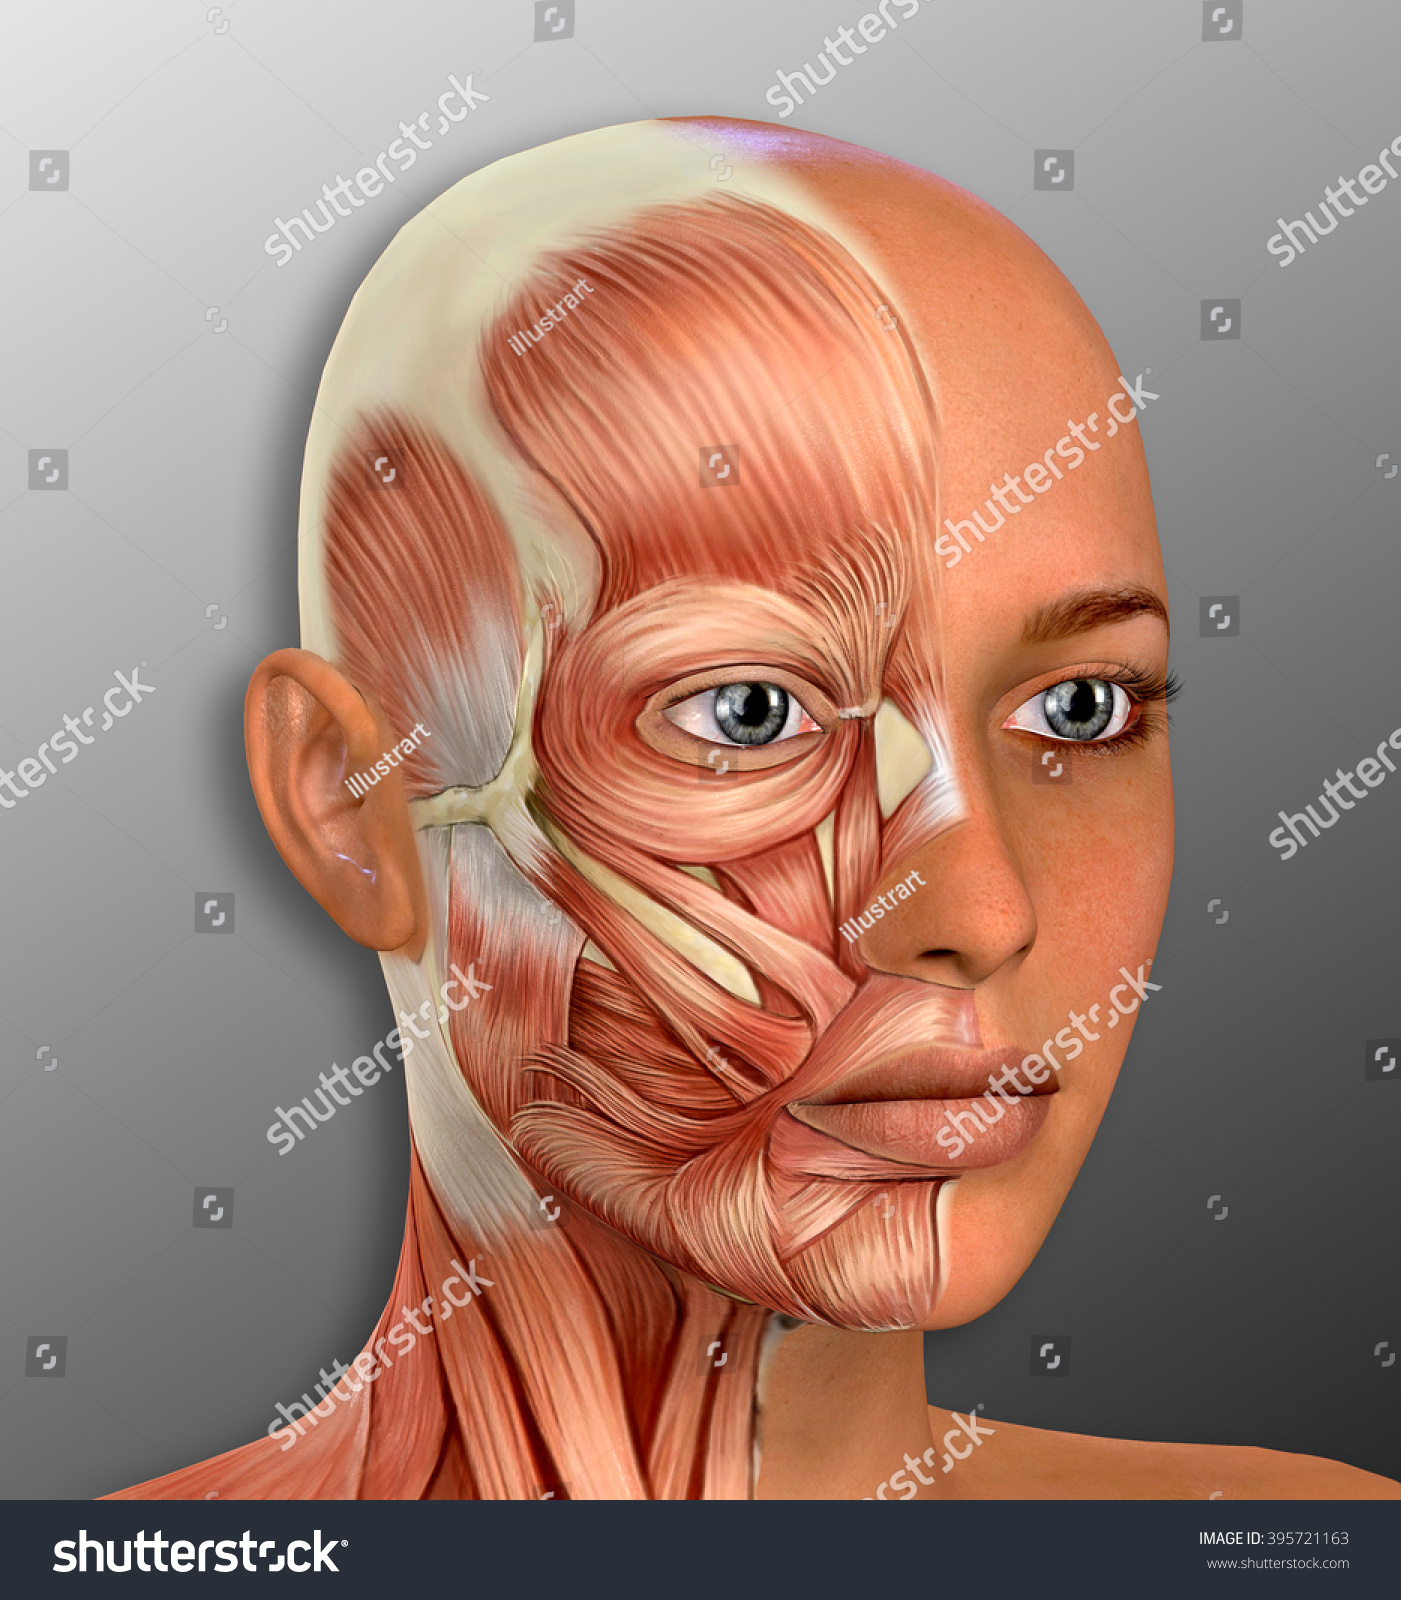 Female Face Muscles Anatomy Illustration Stock Illustration ...